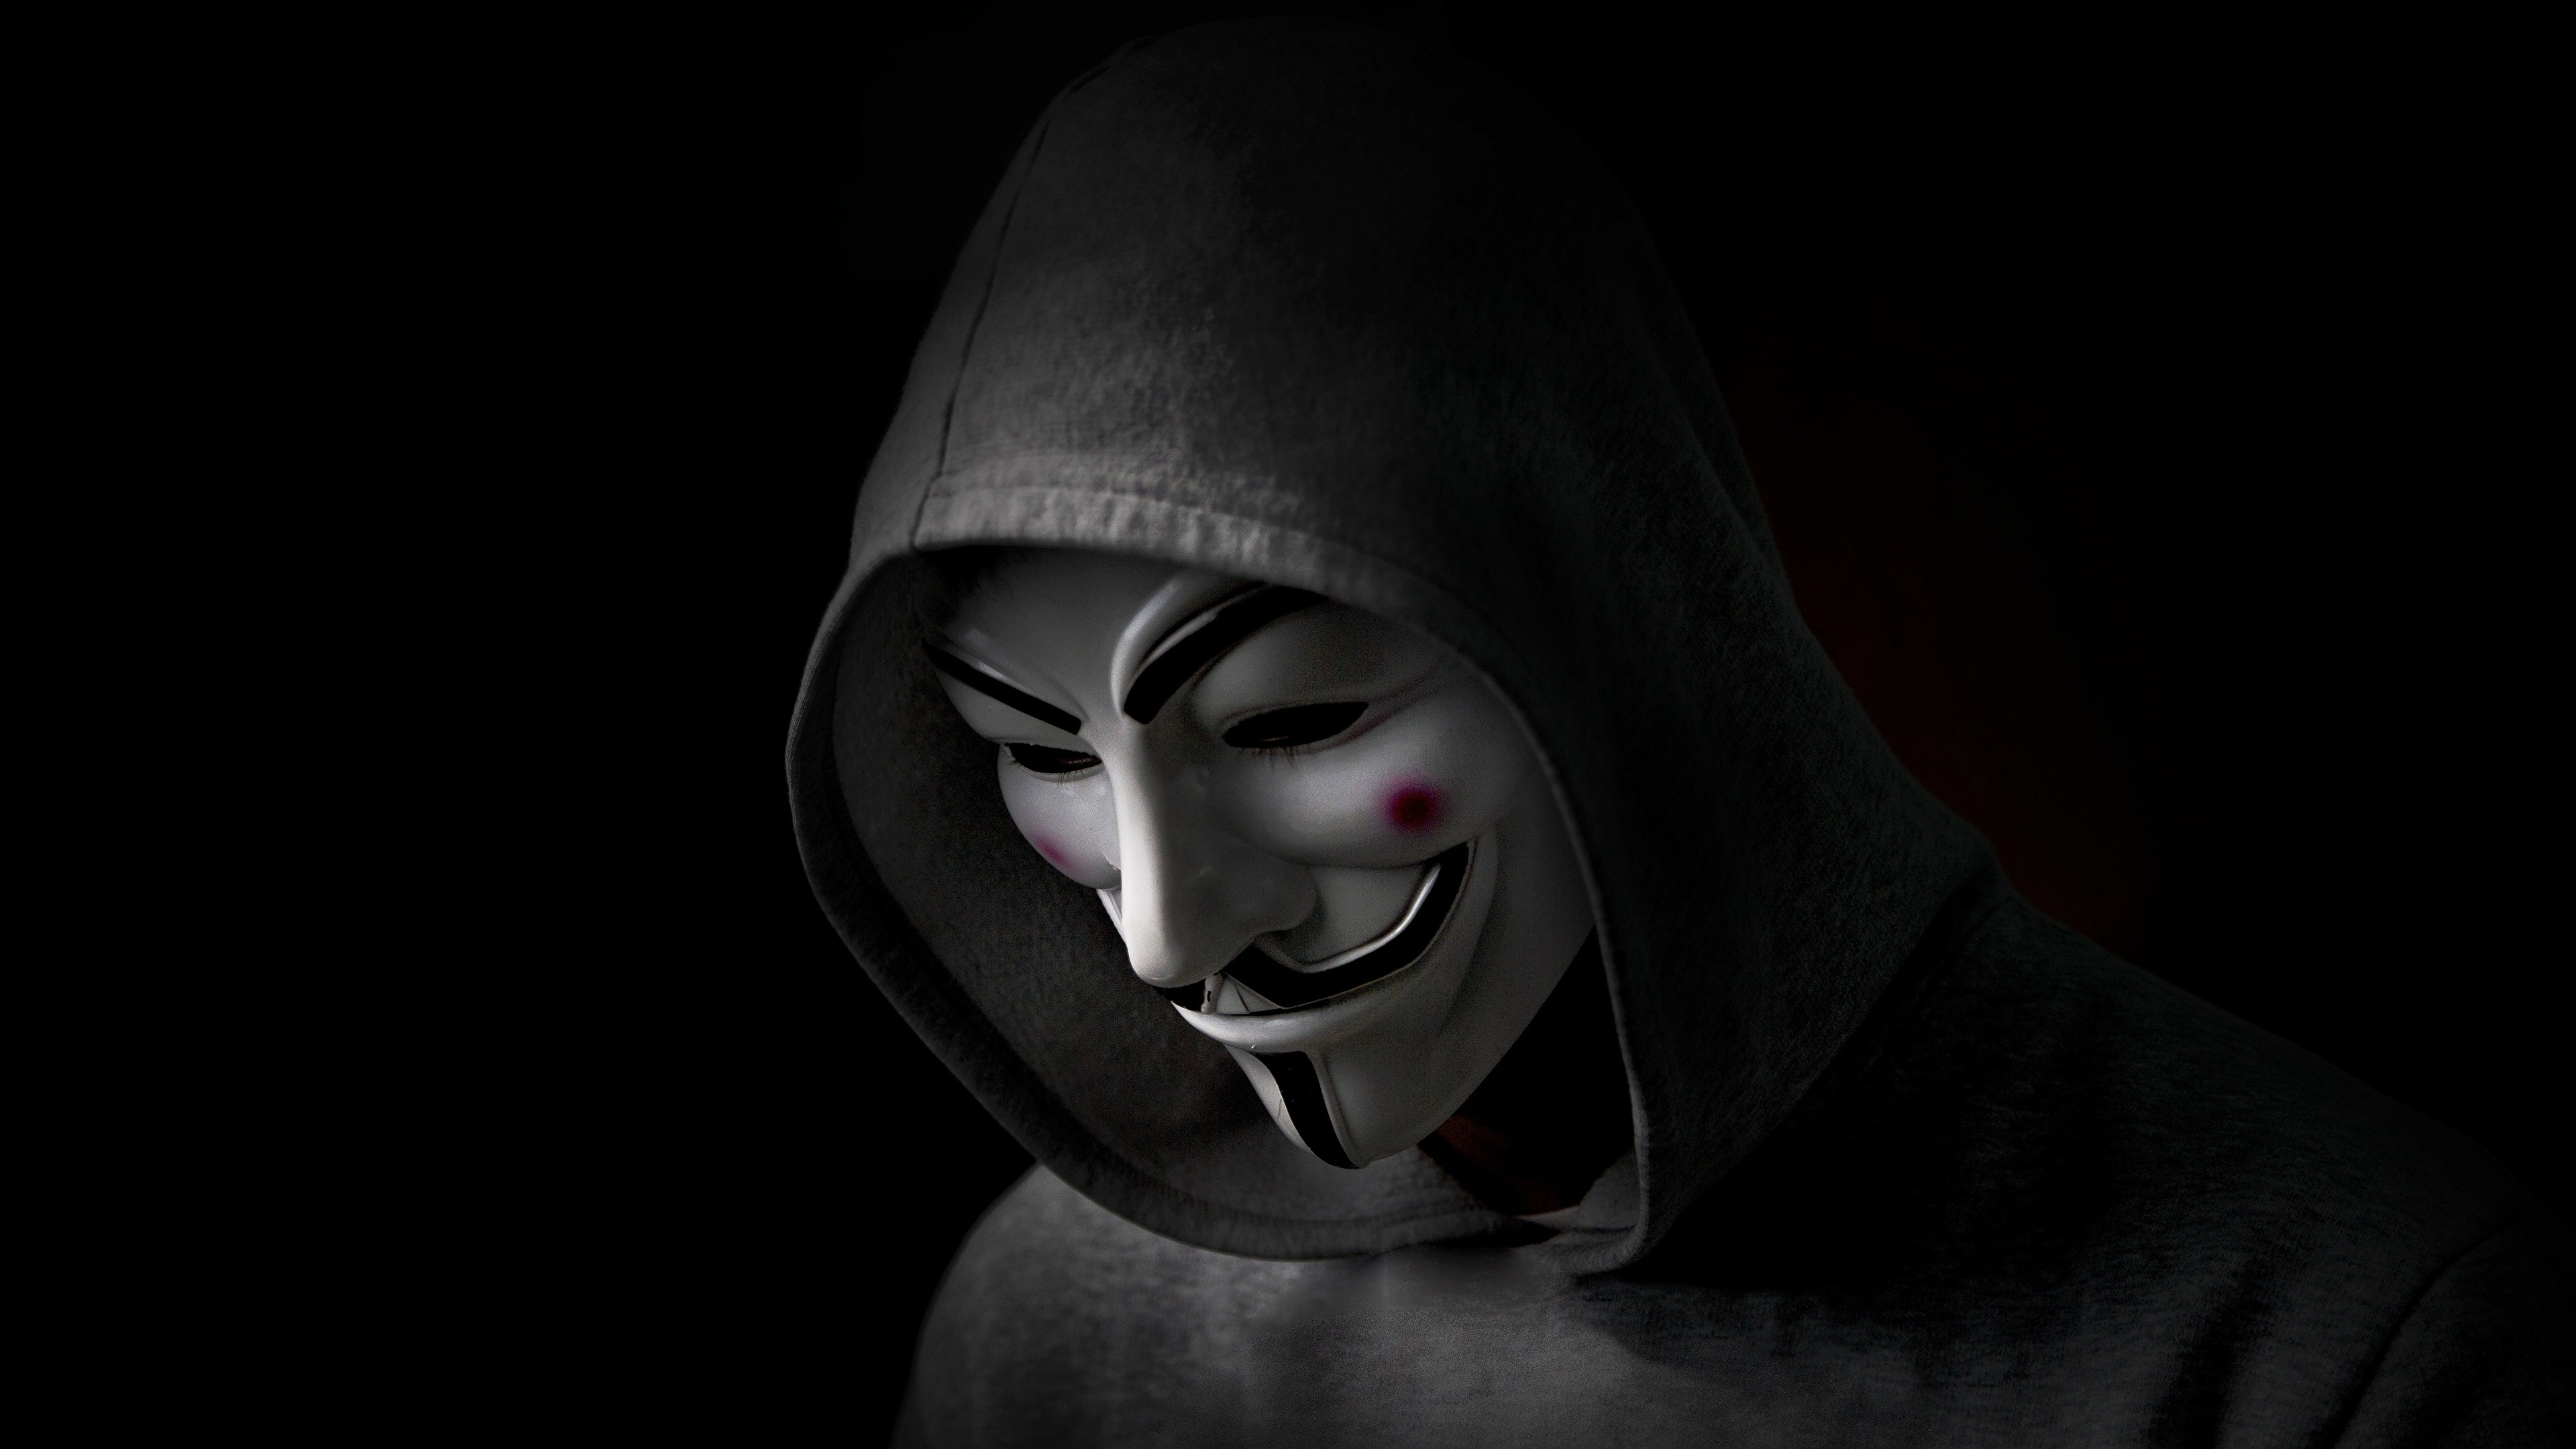 Images V For Vendetta Film Masks Hood Headgear Black 3840x2160